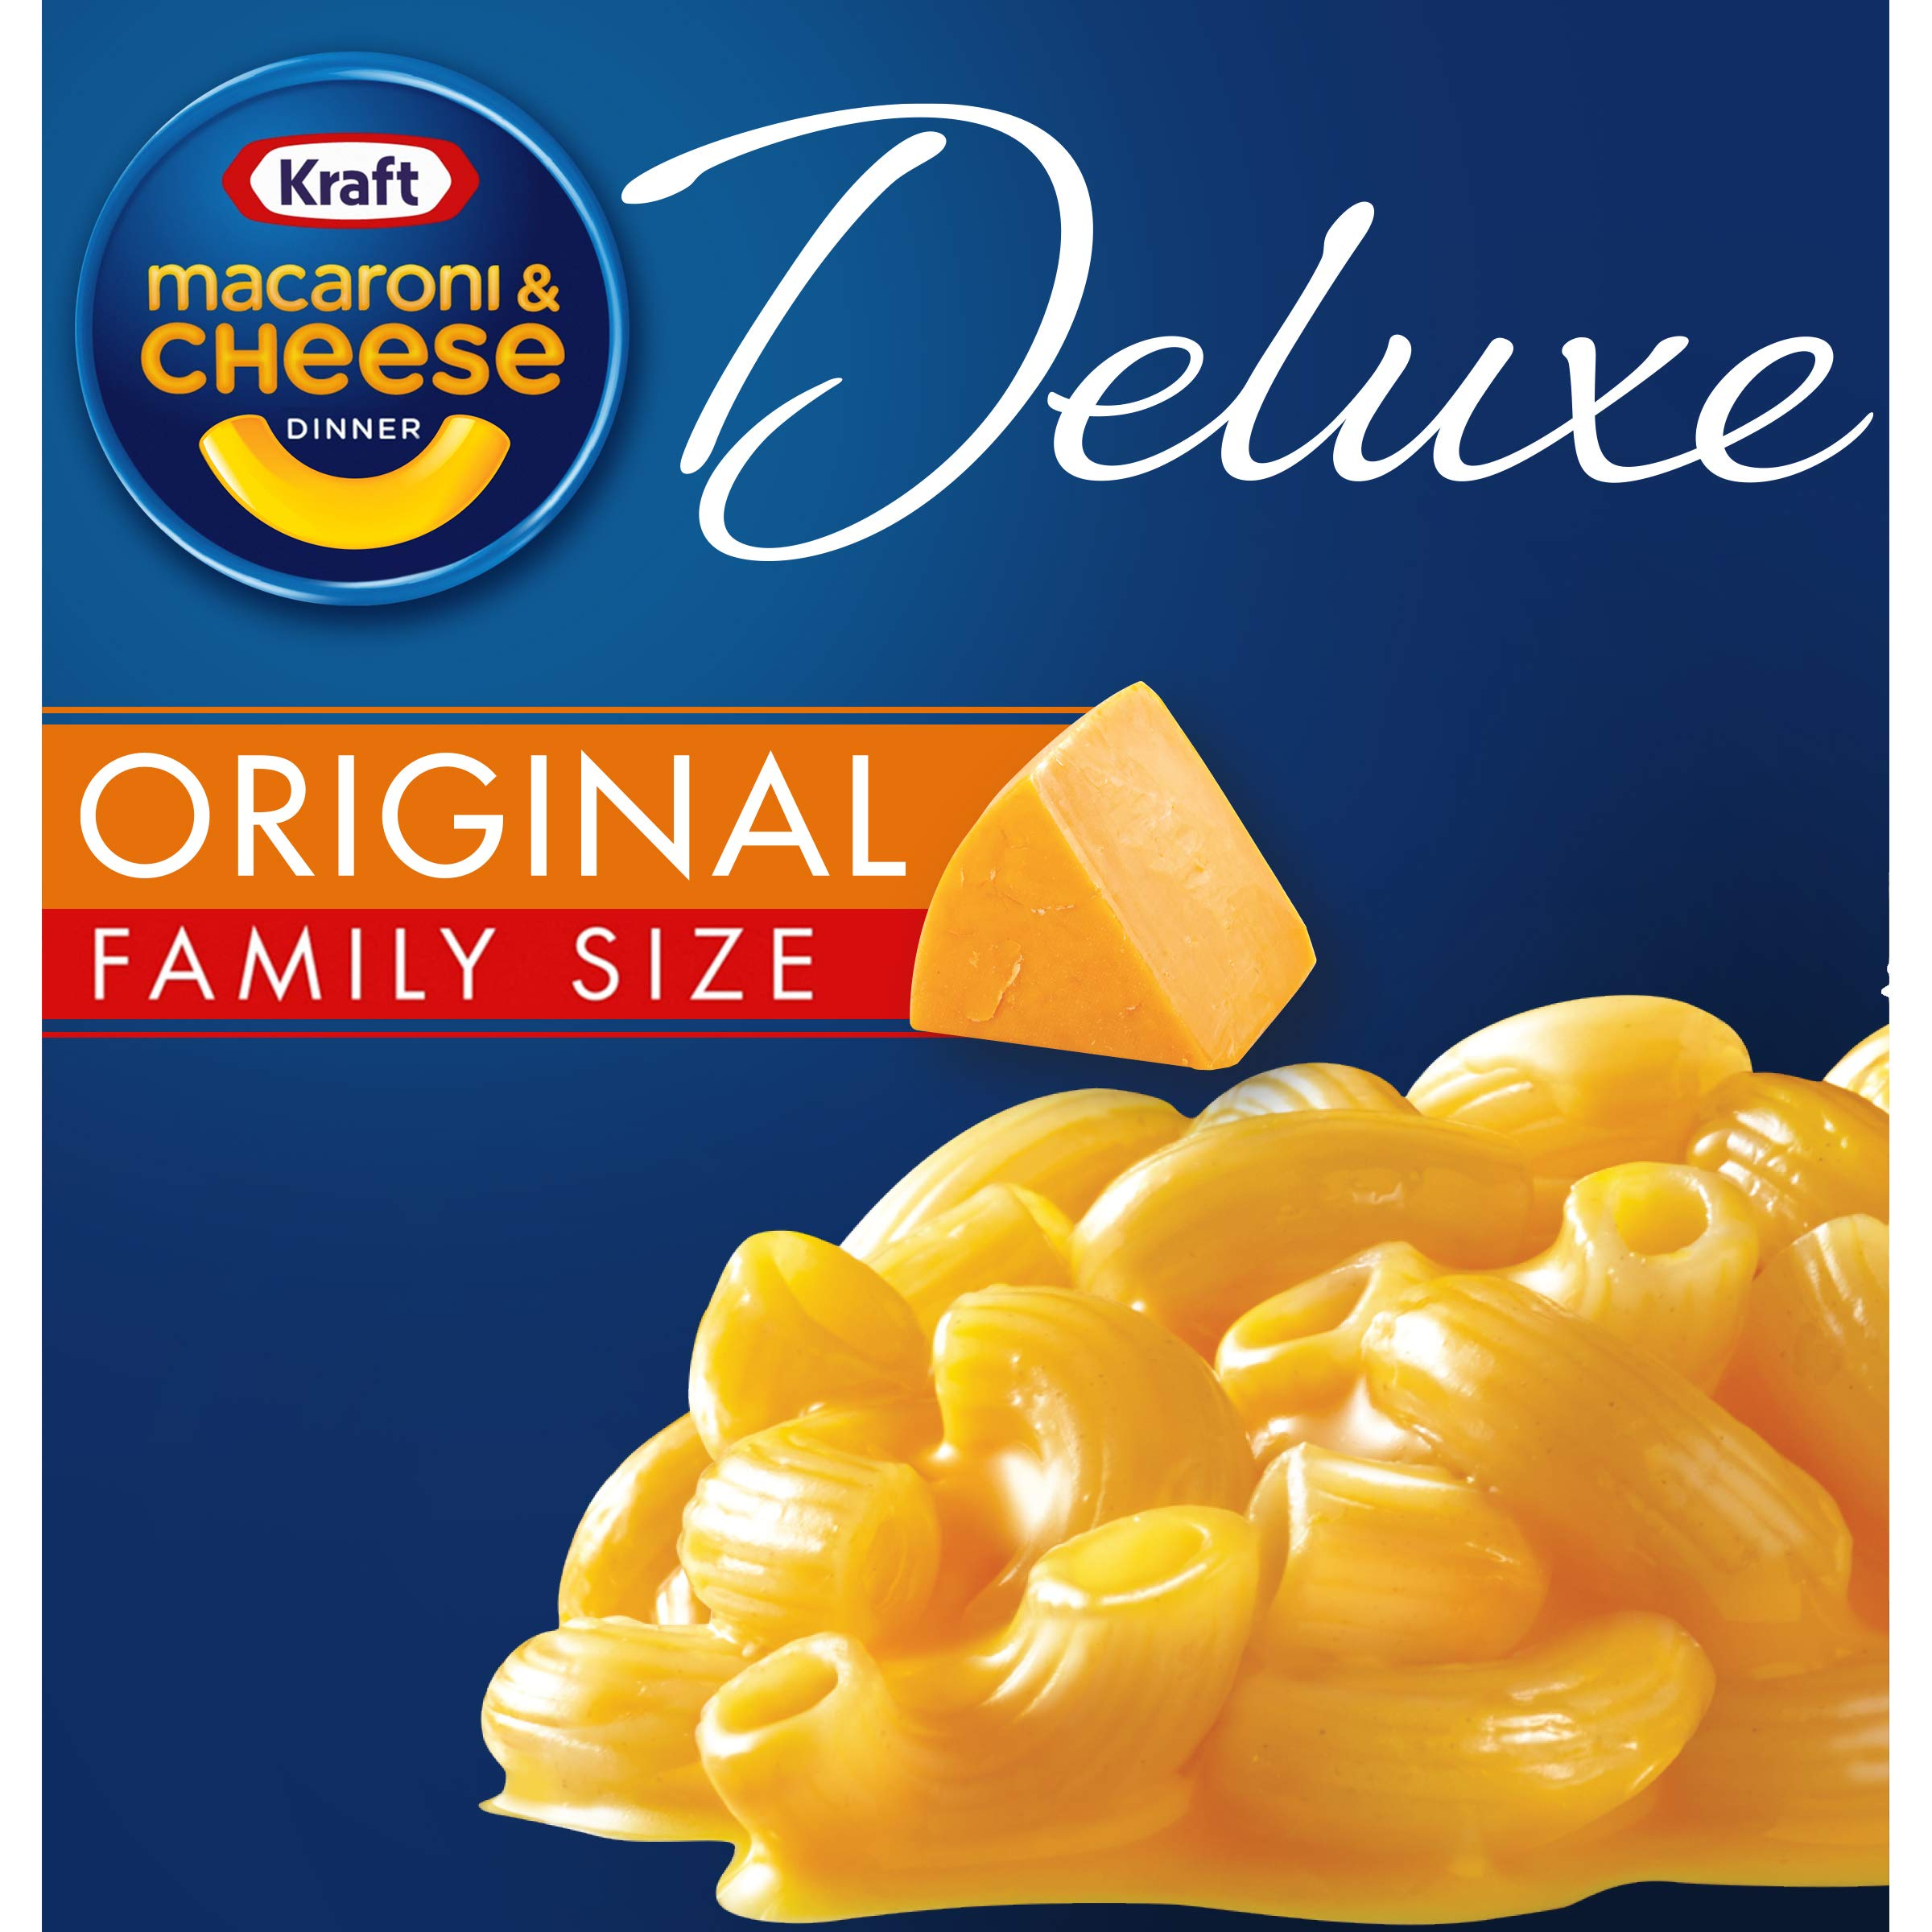 Kraft Deluxe Original Cheddar Family Size Macaroni and Cheese Meal (24 oz Boxes, Pack of 3)